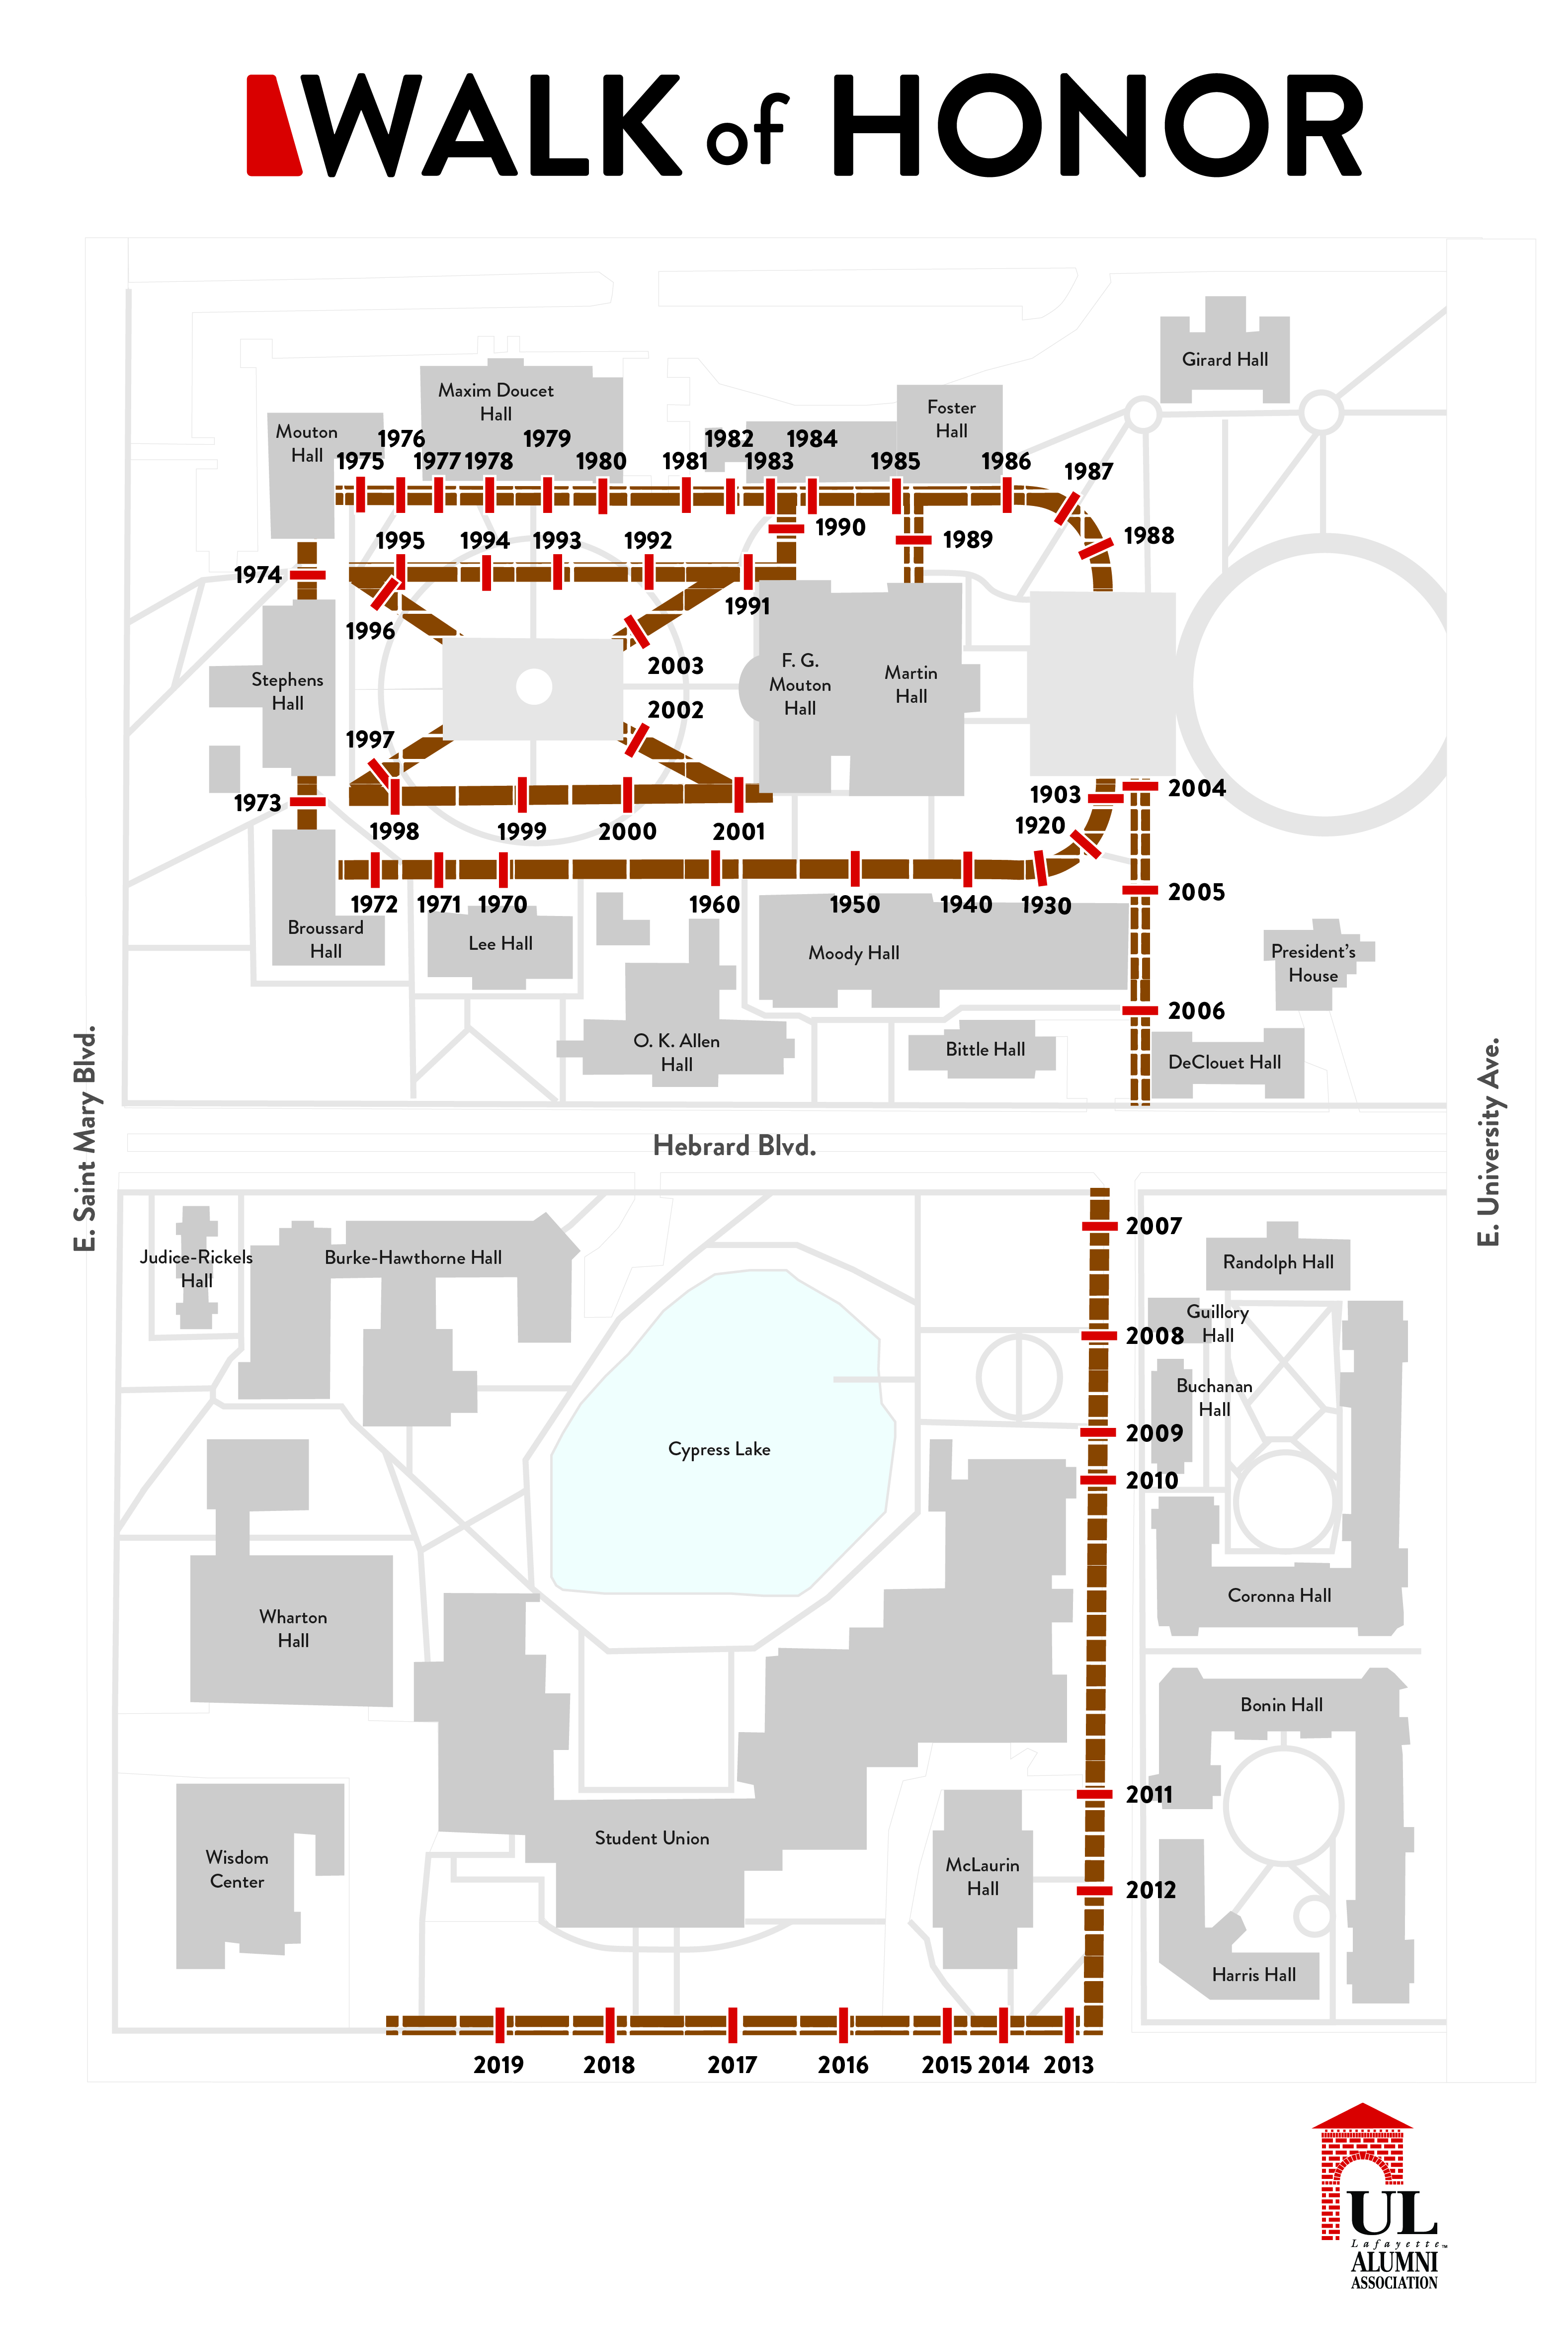 Map of the Walk of Honor